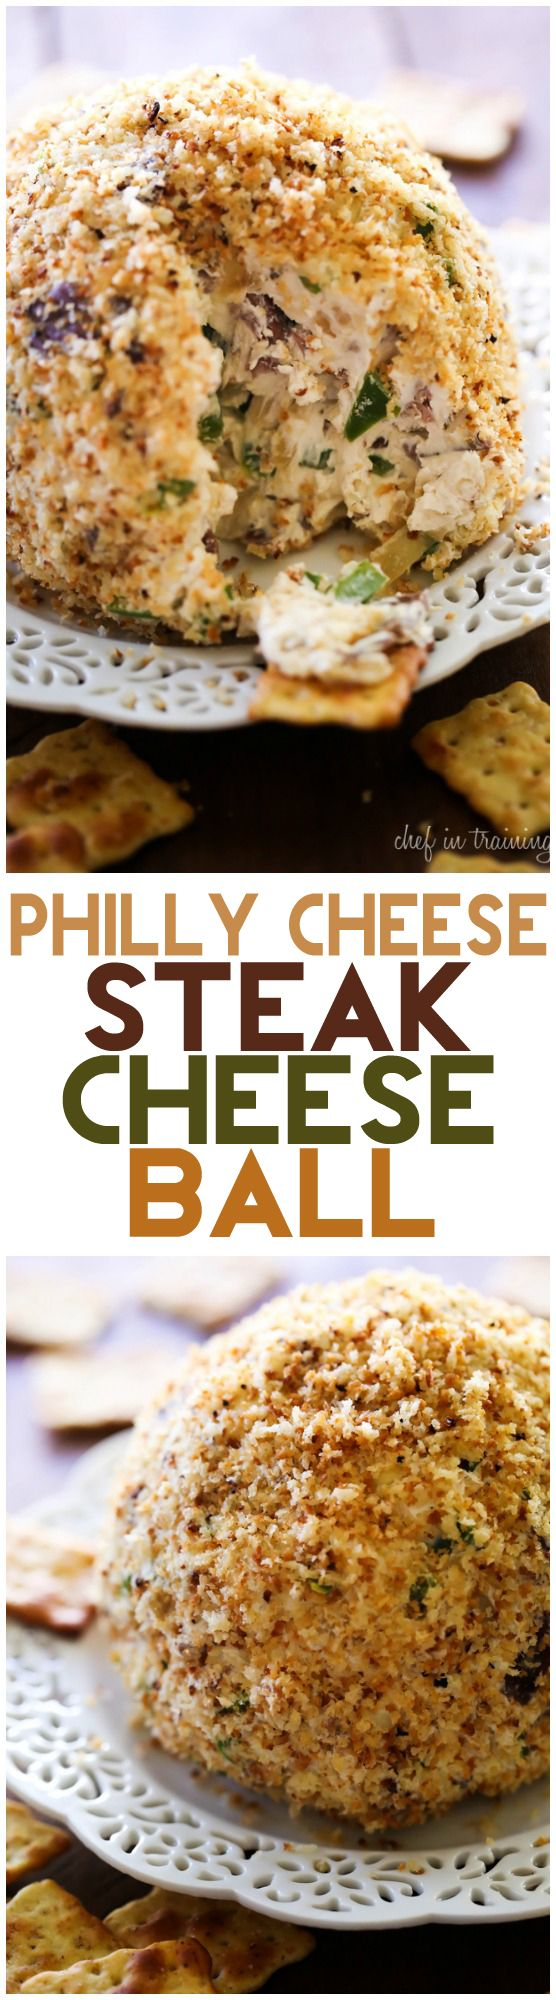 Philly Cheese Steak Cheese Ball... all the flavors you love from a popular sandwich, turned into one delicious and simple appetizer!